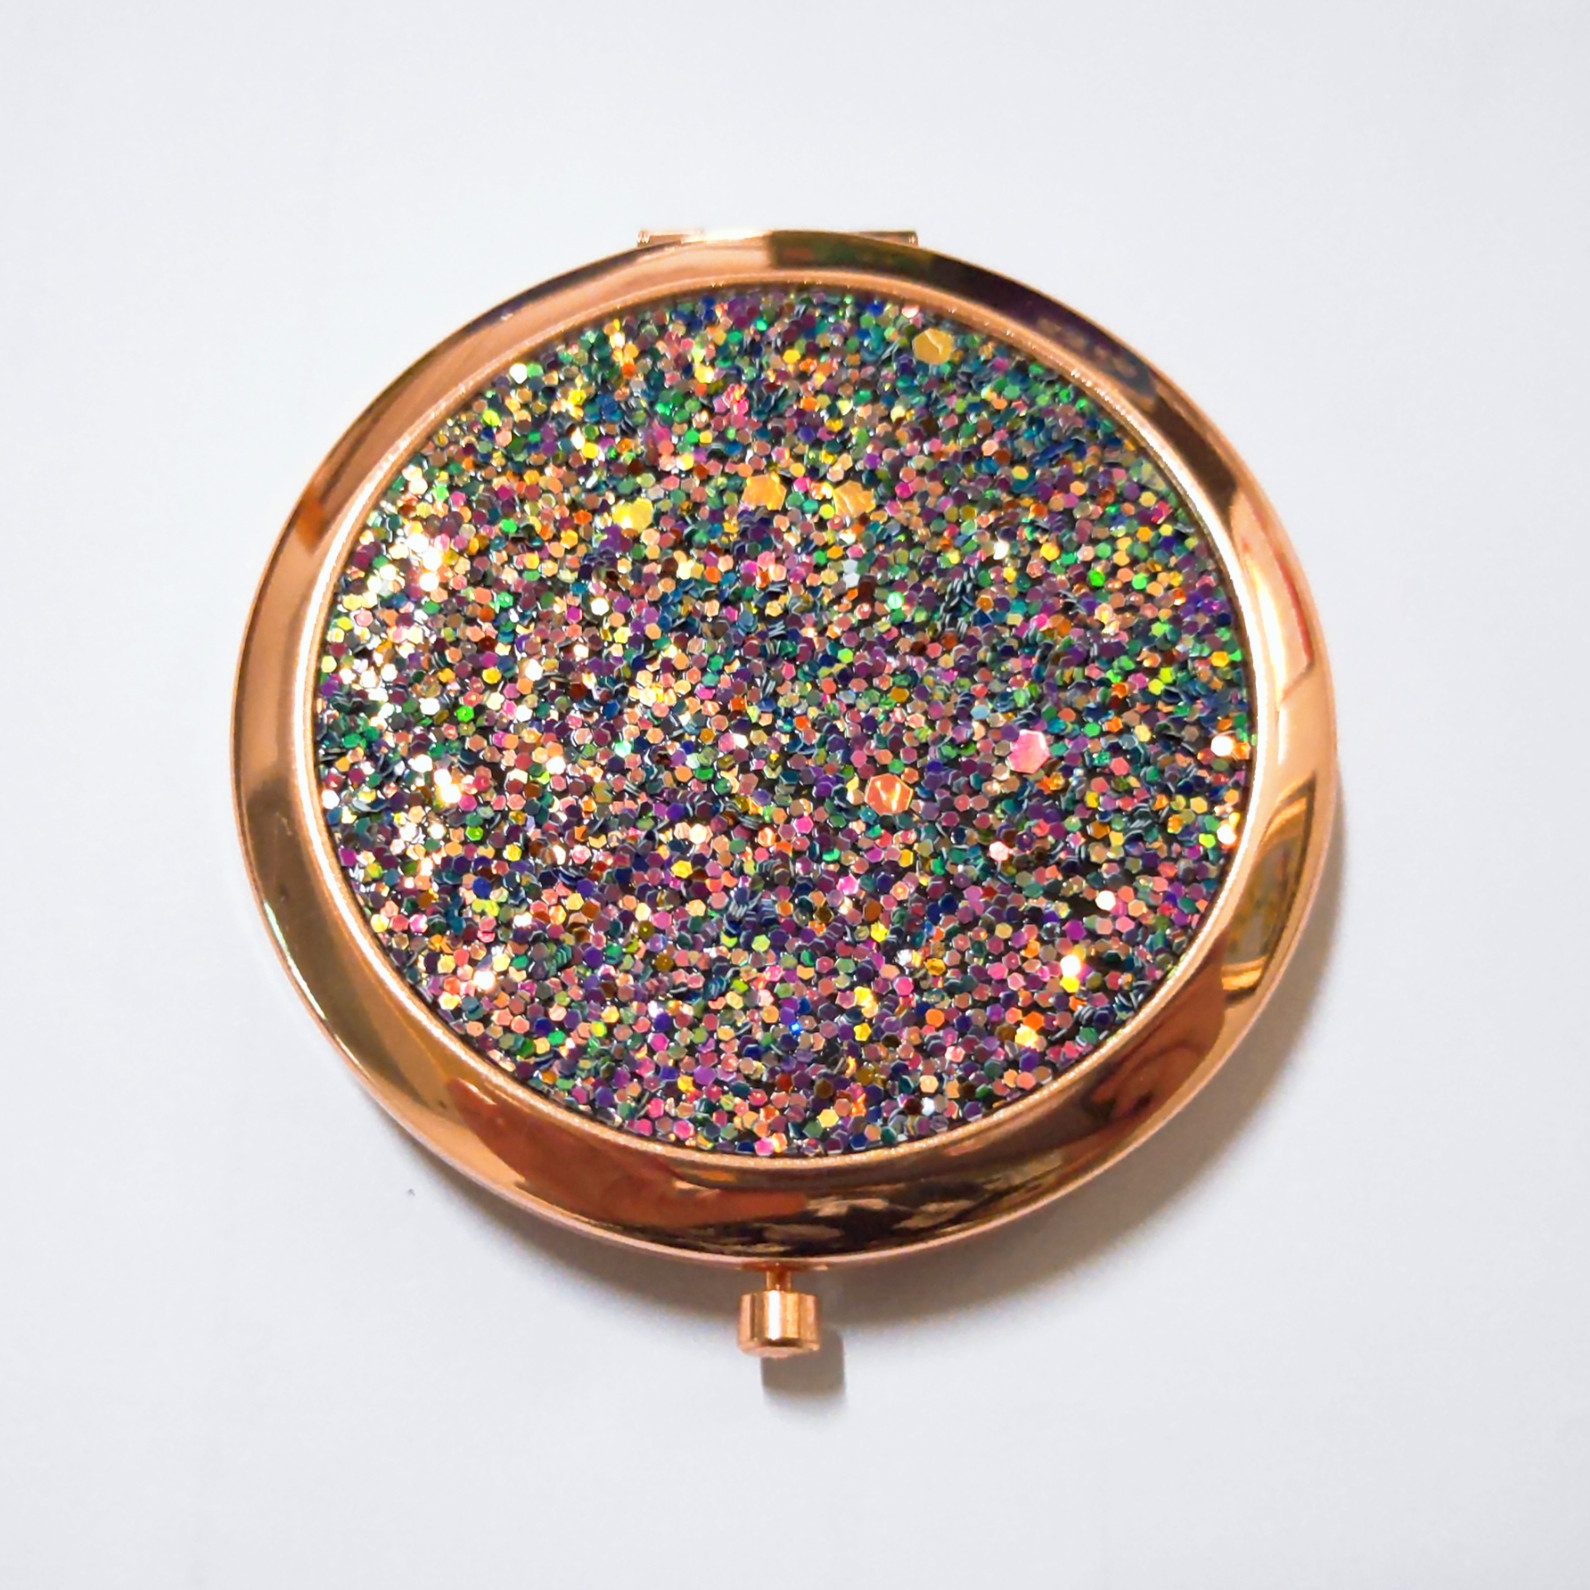 bling glitter deco compact mirror for travel girls make up